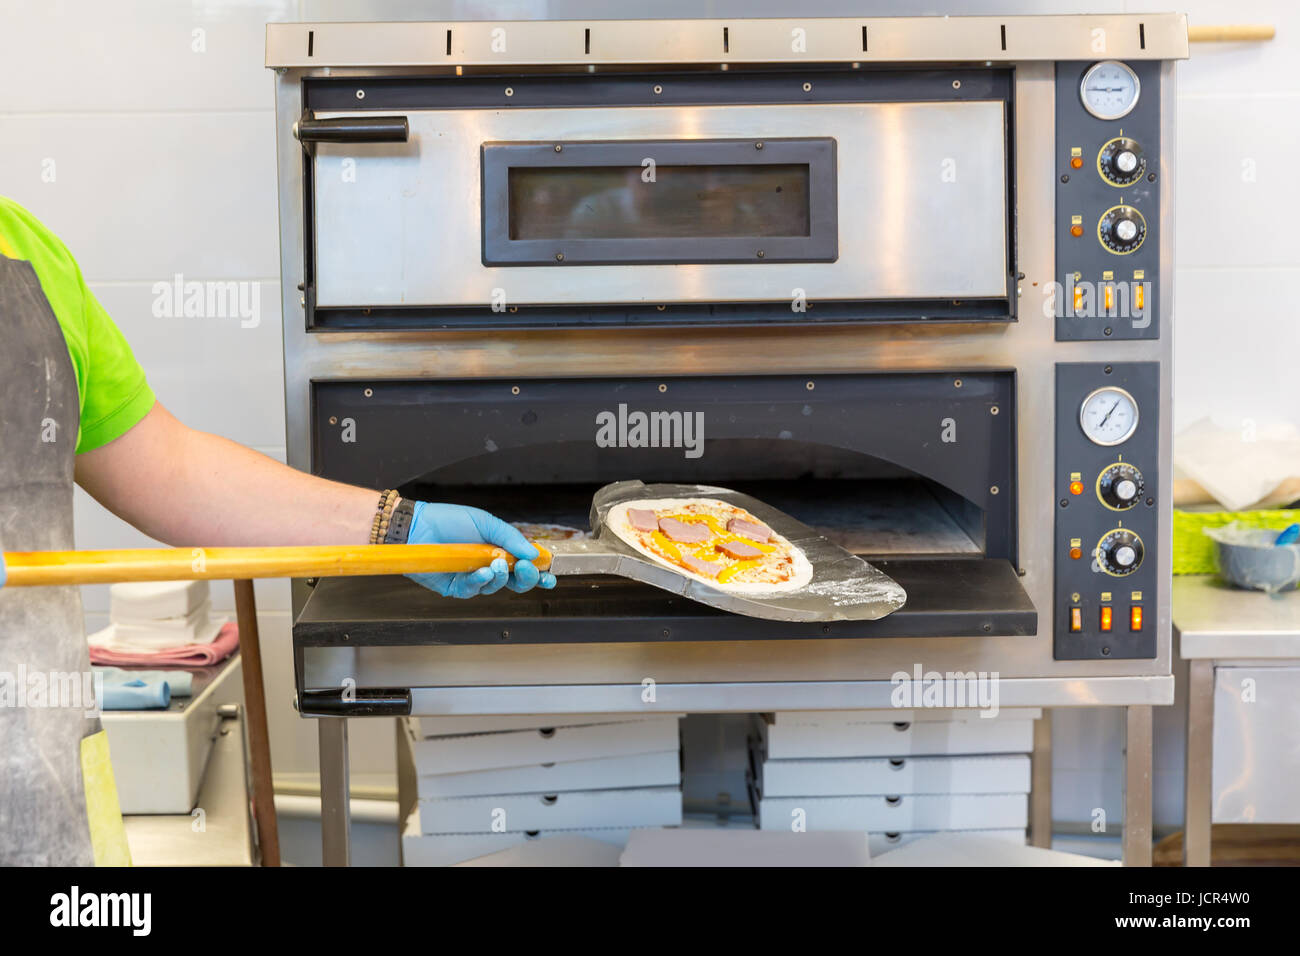 Baker Hands With Shovel, Cooking Pizza, Electric Ovens